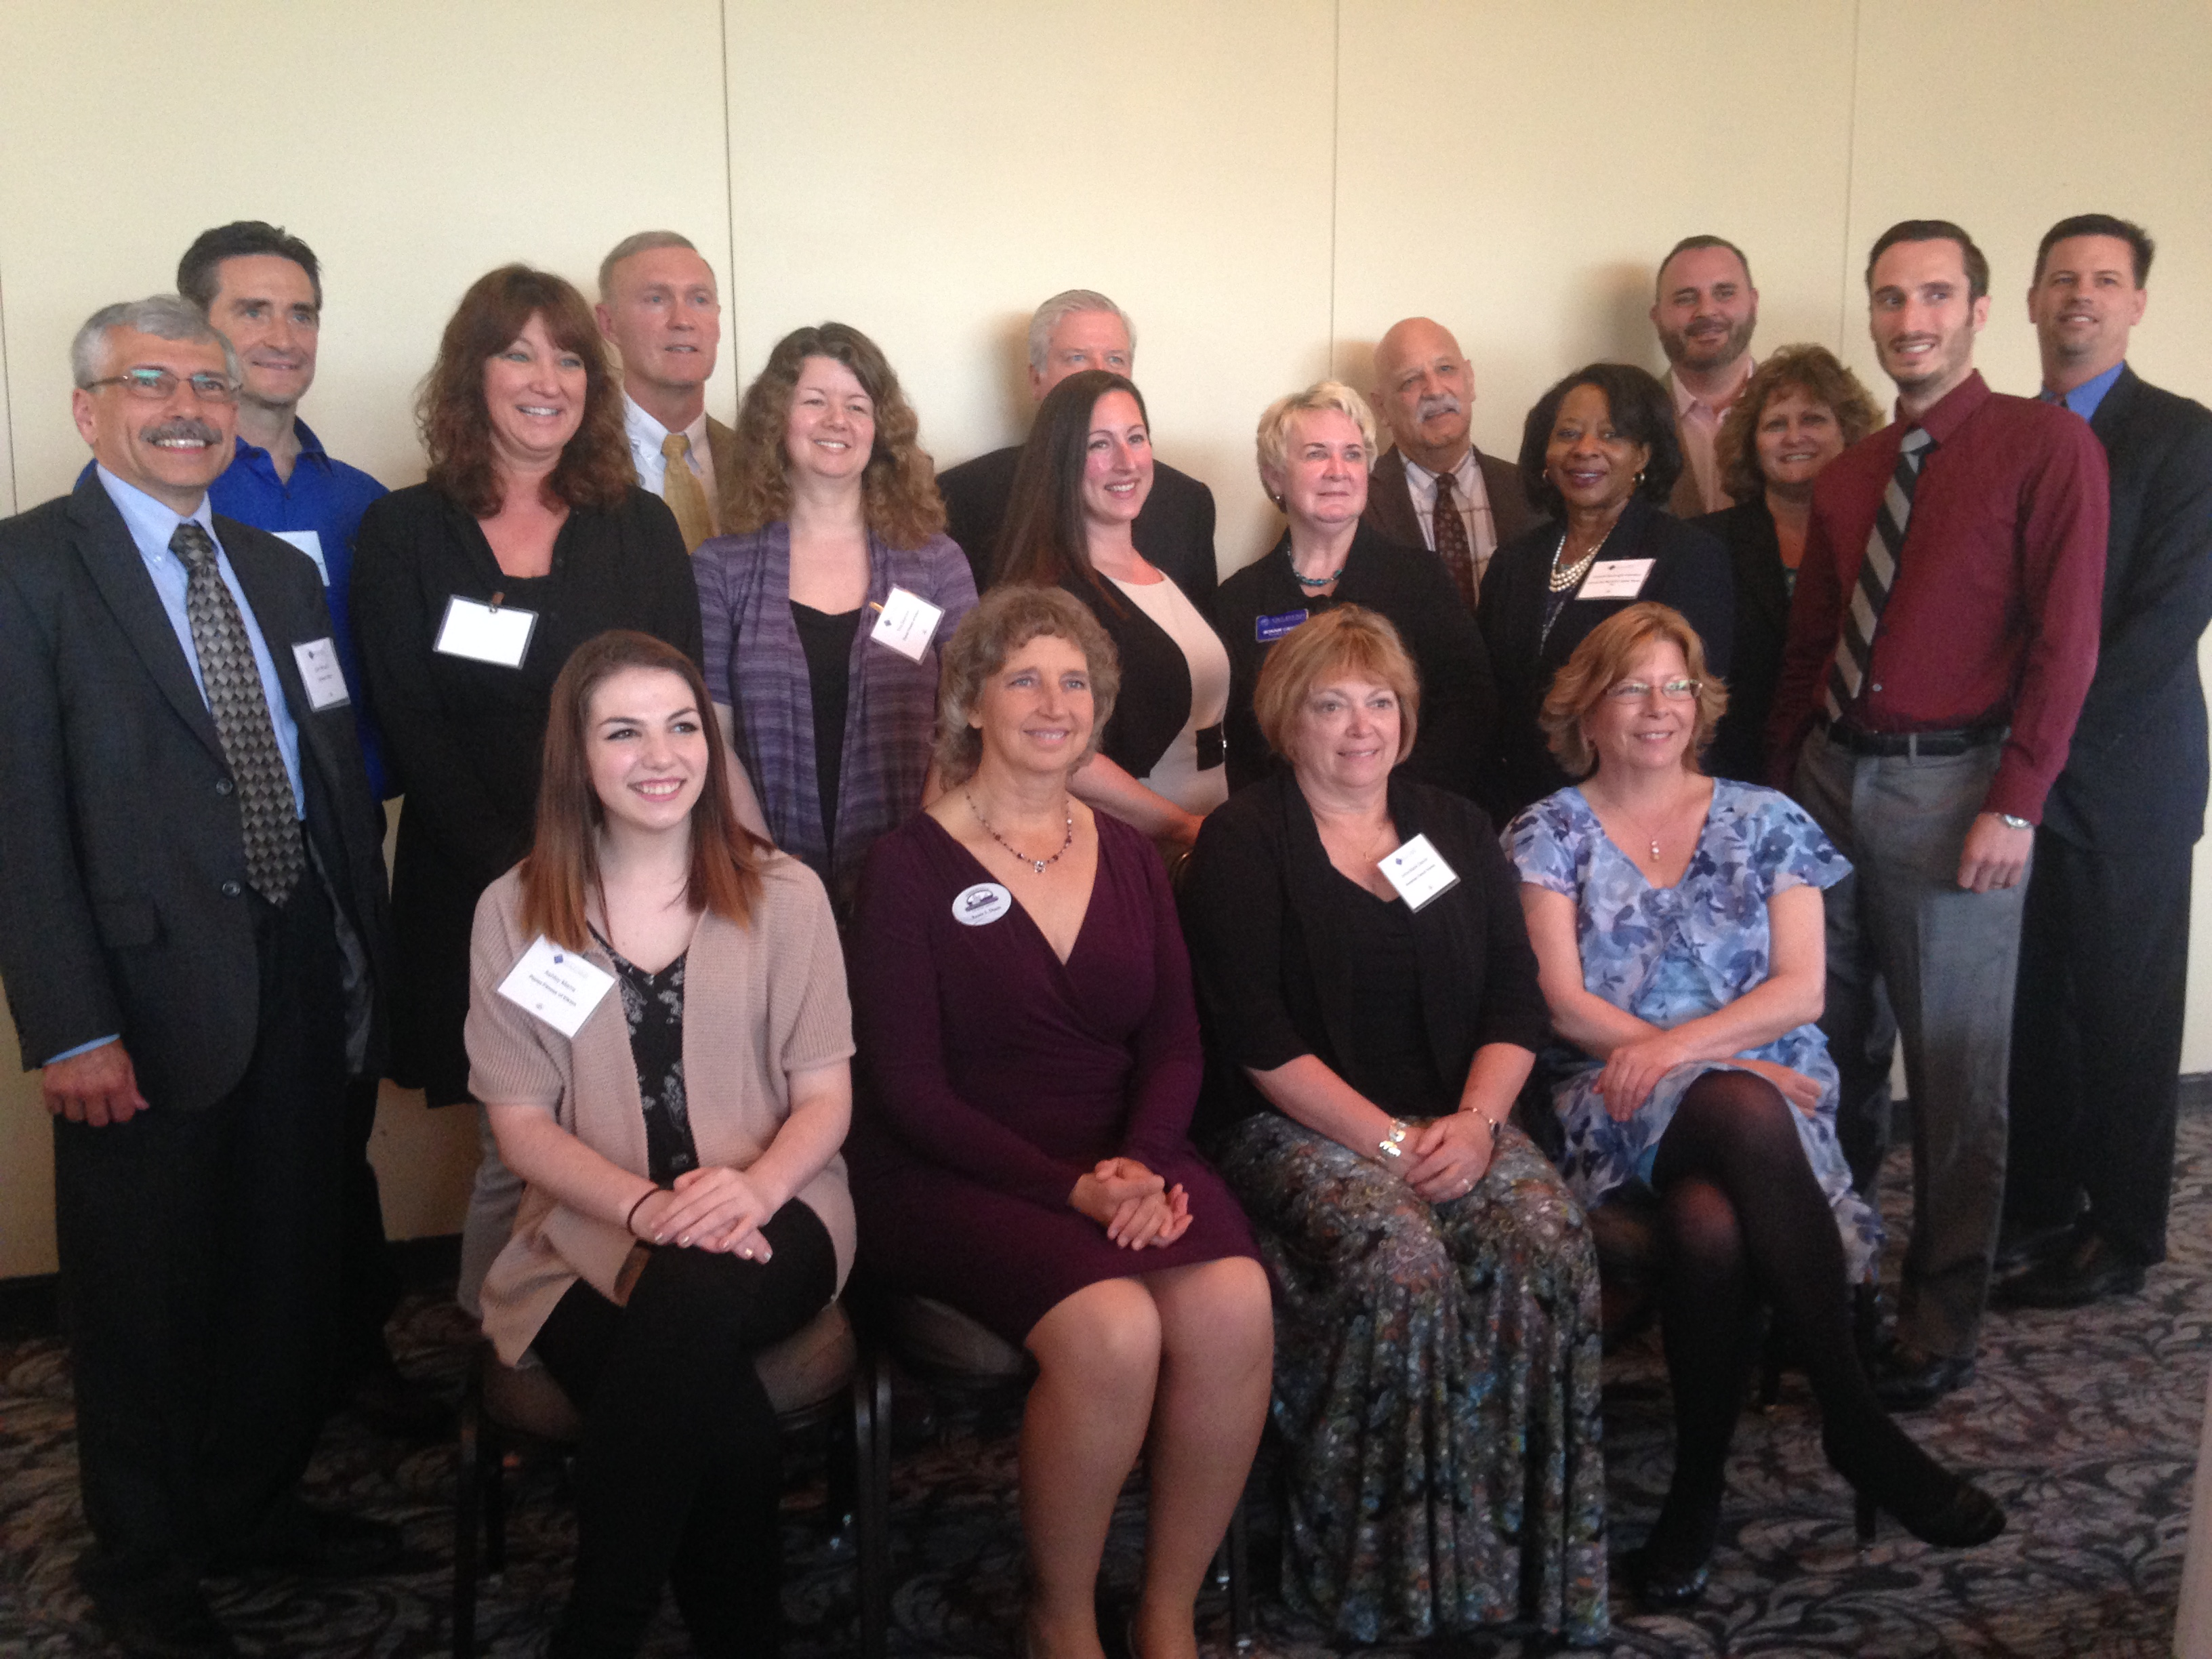 Cecil County Chamber Shares Community Pridewith 2016 Business Spotlight Luncheon